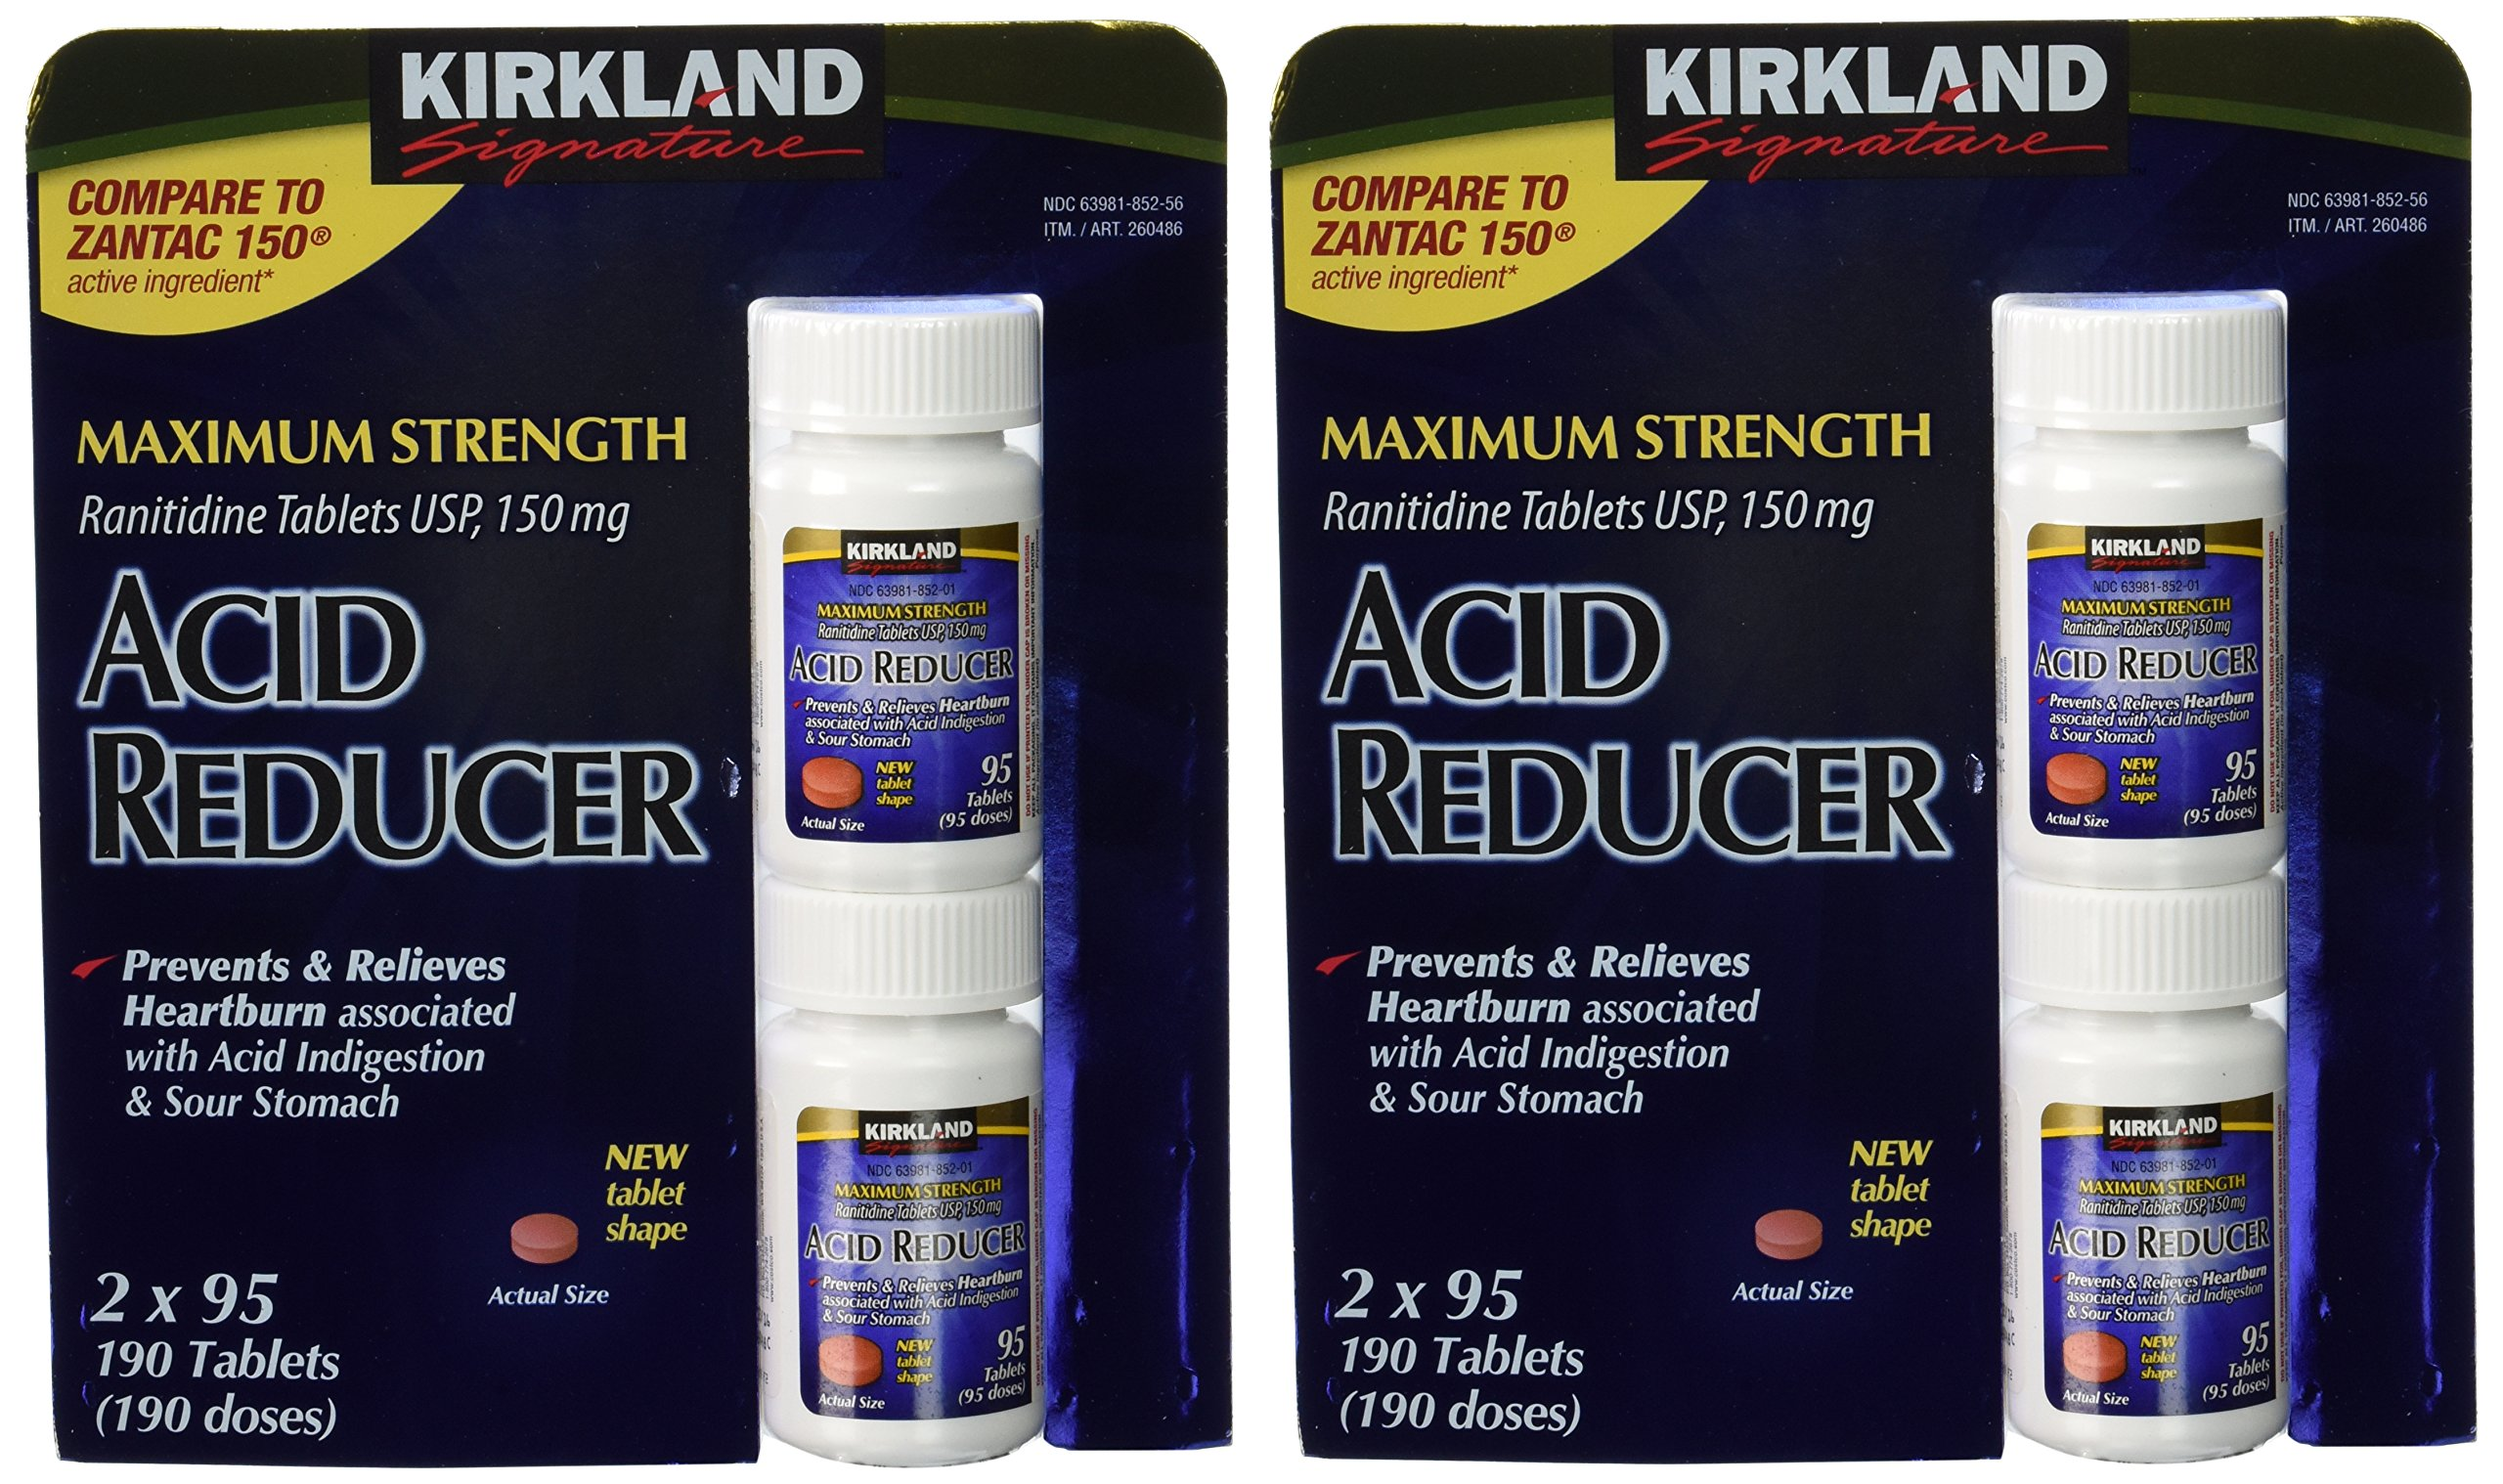 Kirkland Signature Maximum Strength Acid reducer Ranitidine tablets USP 150MG 95 Tablets 4-Count 380 Total tablets. by Kirkland Signature